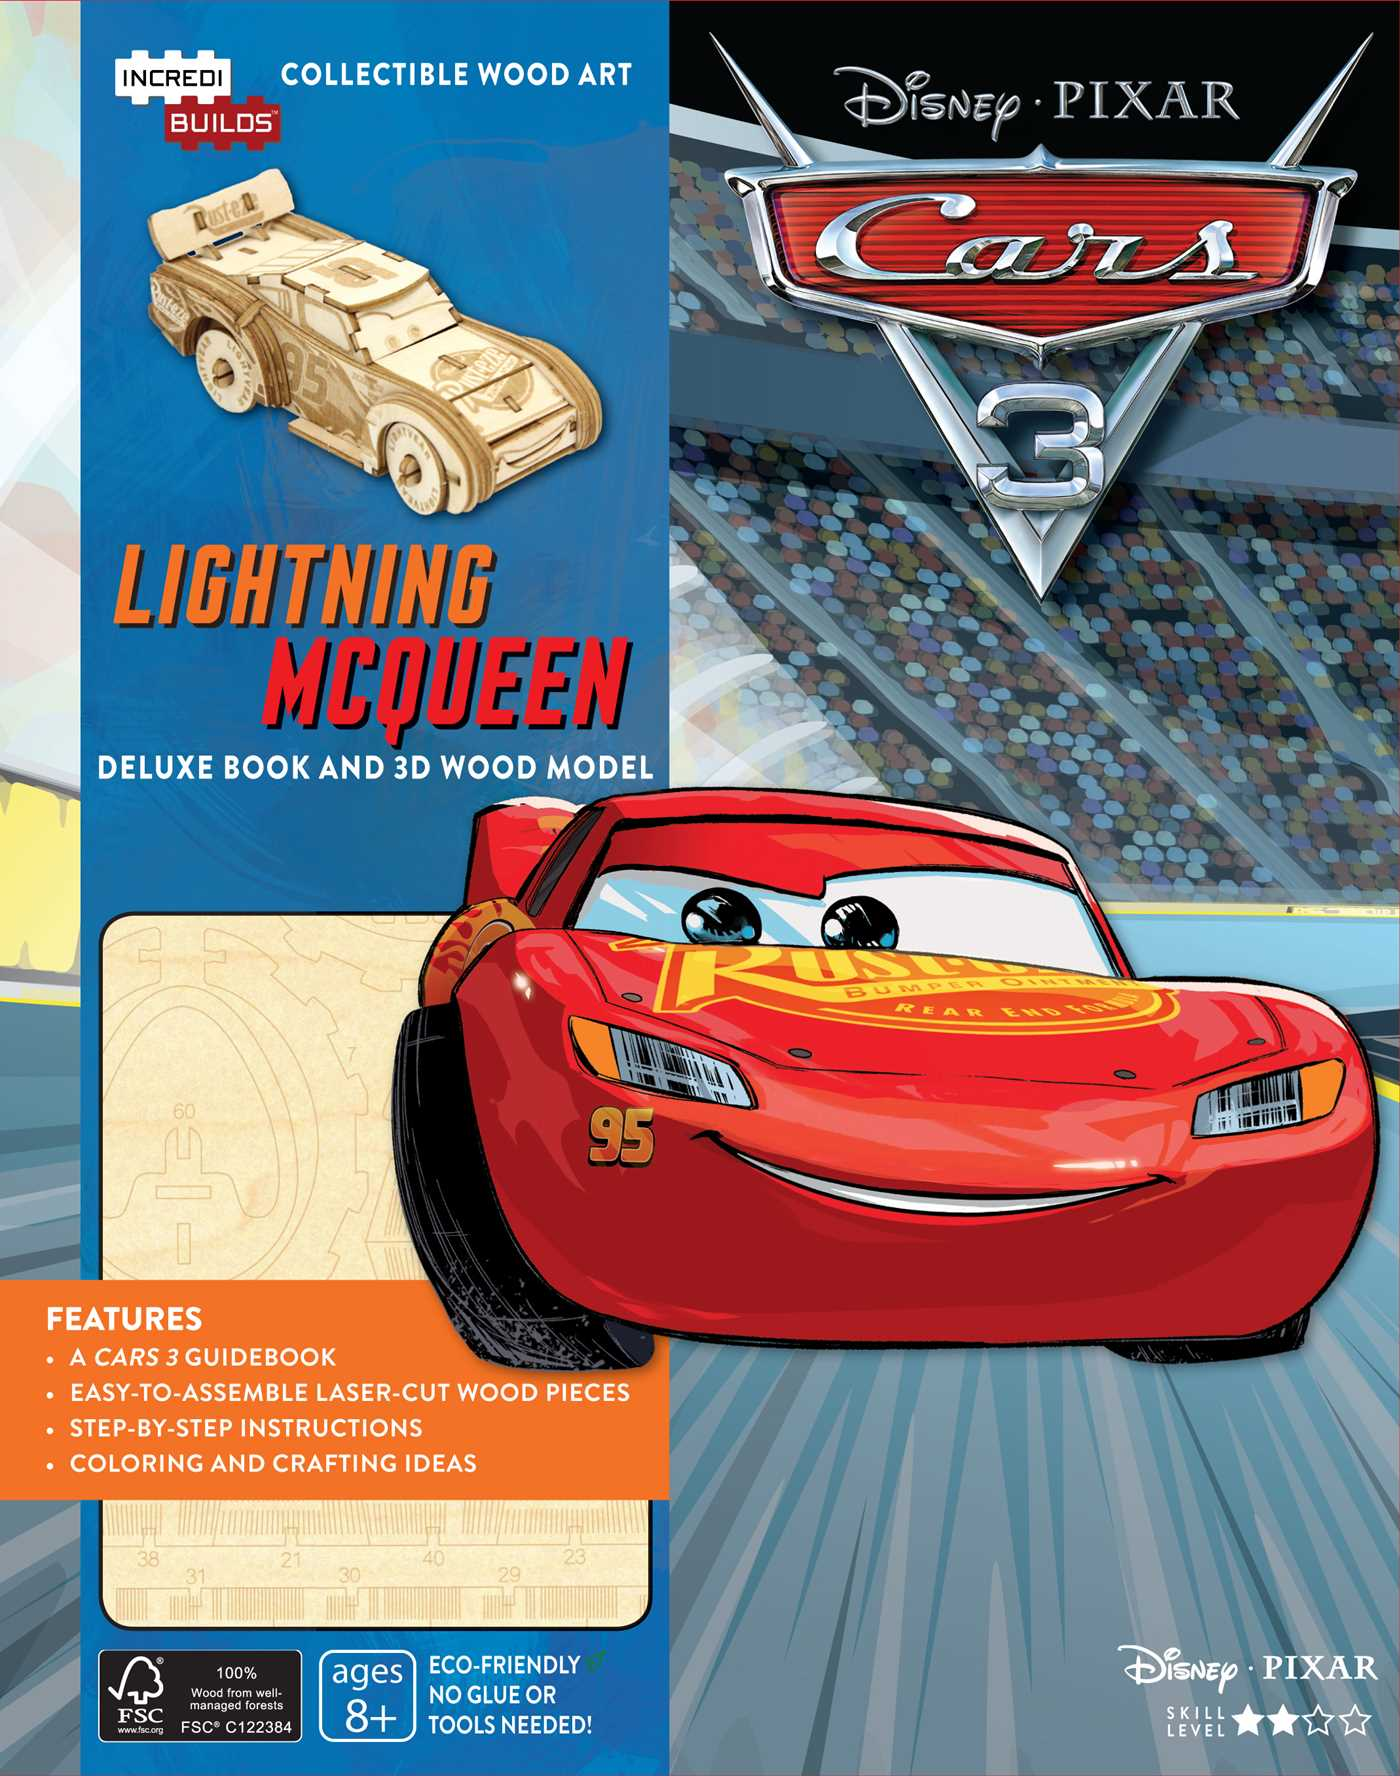 incredibuilds disney pixar cars 3 lightning mcqueen deluxe book and model set 9781682981221 hr